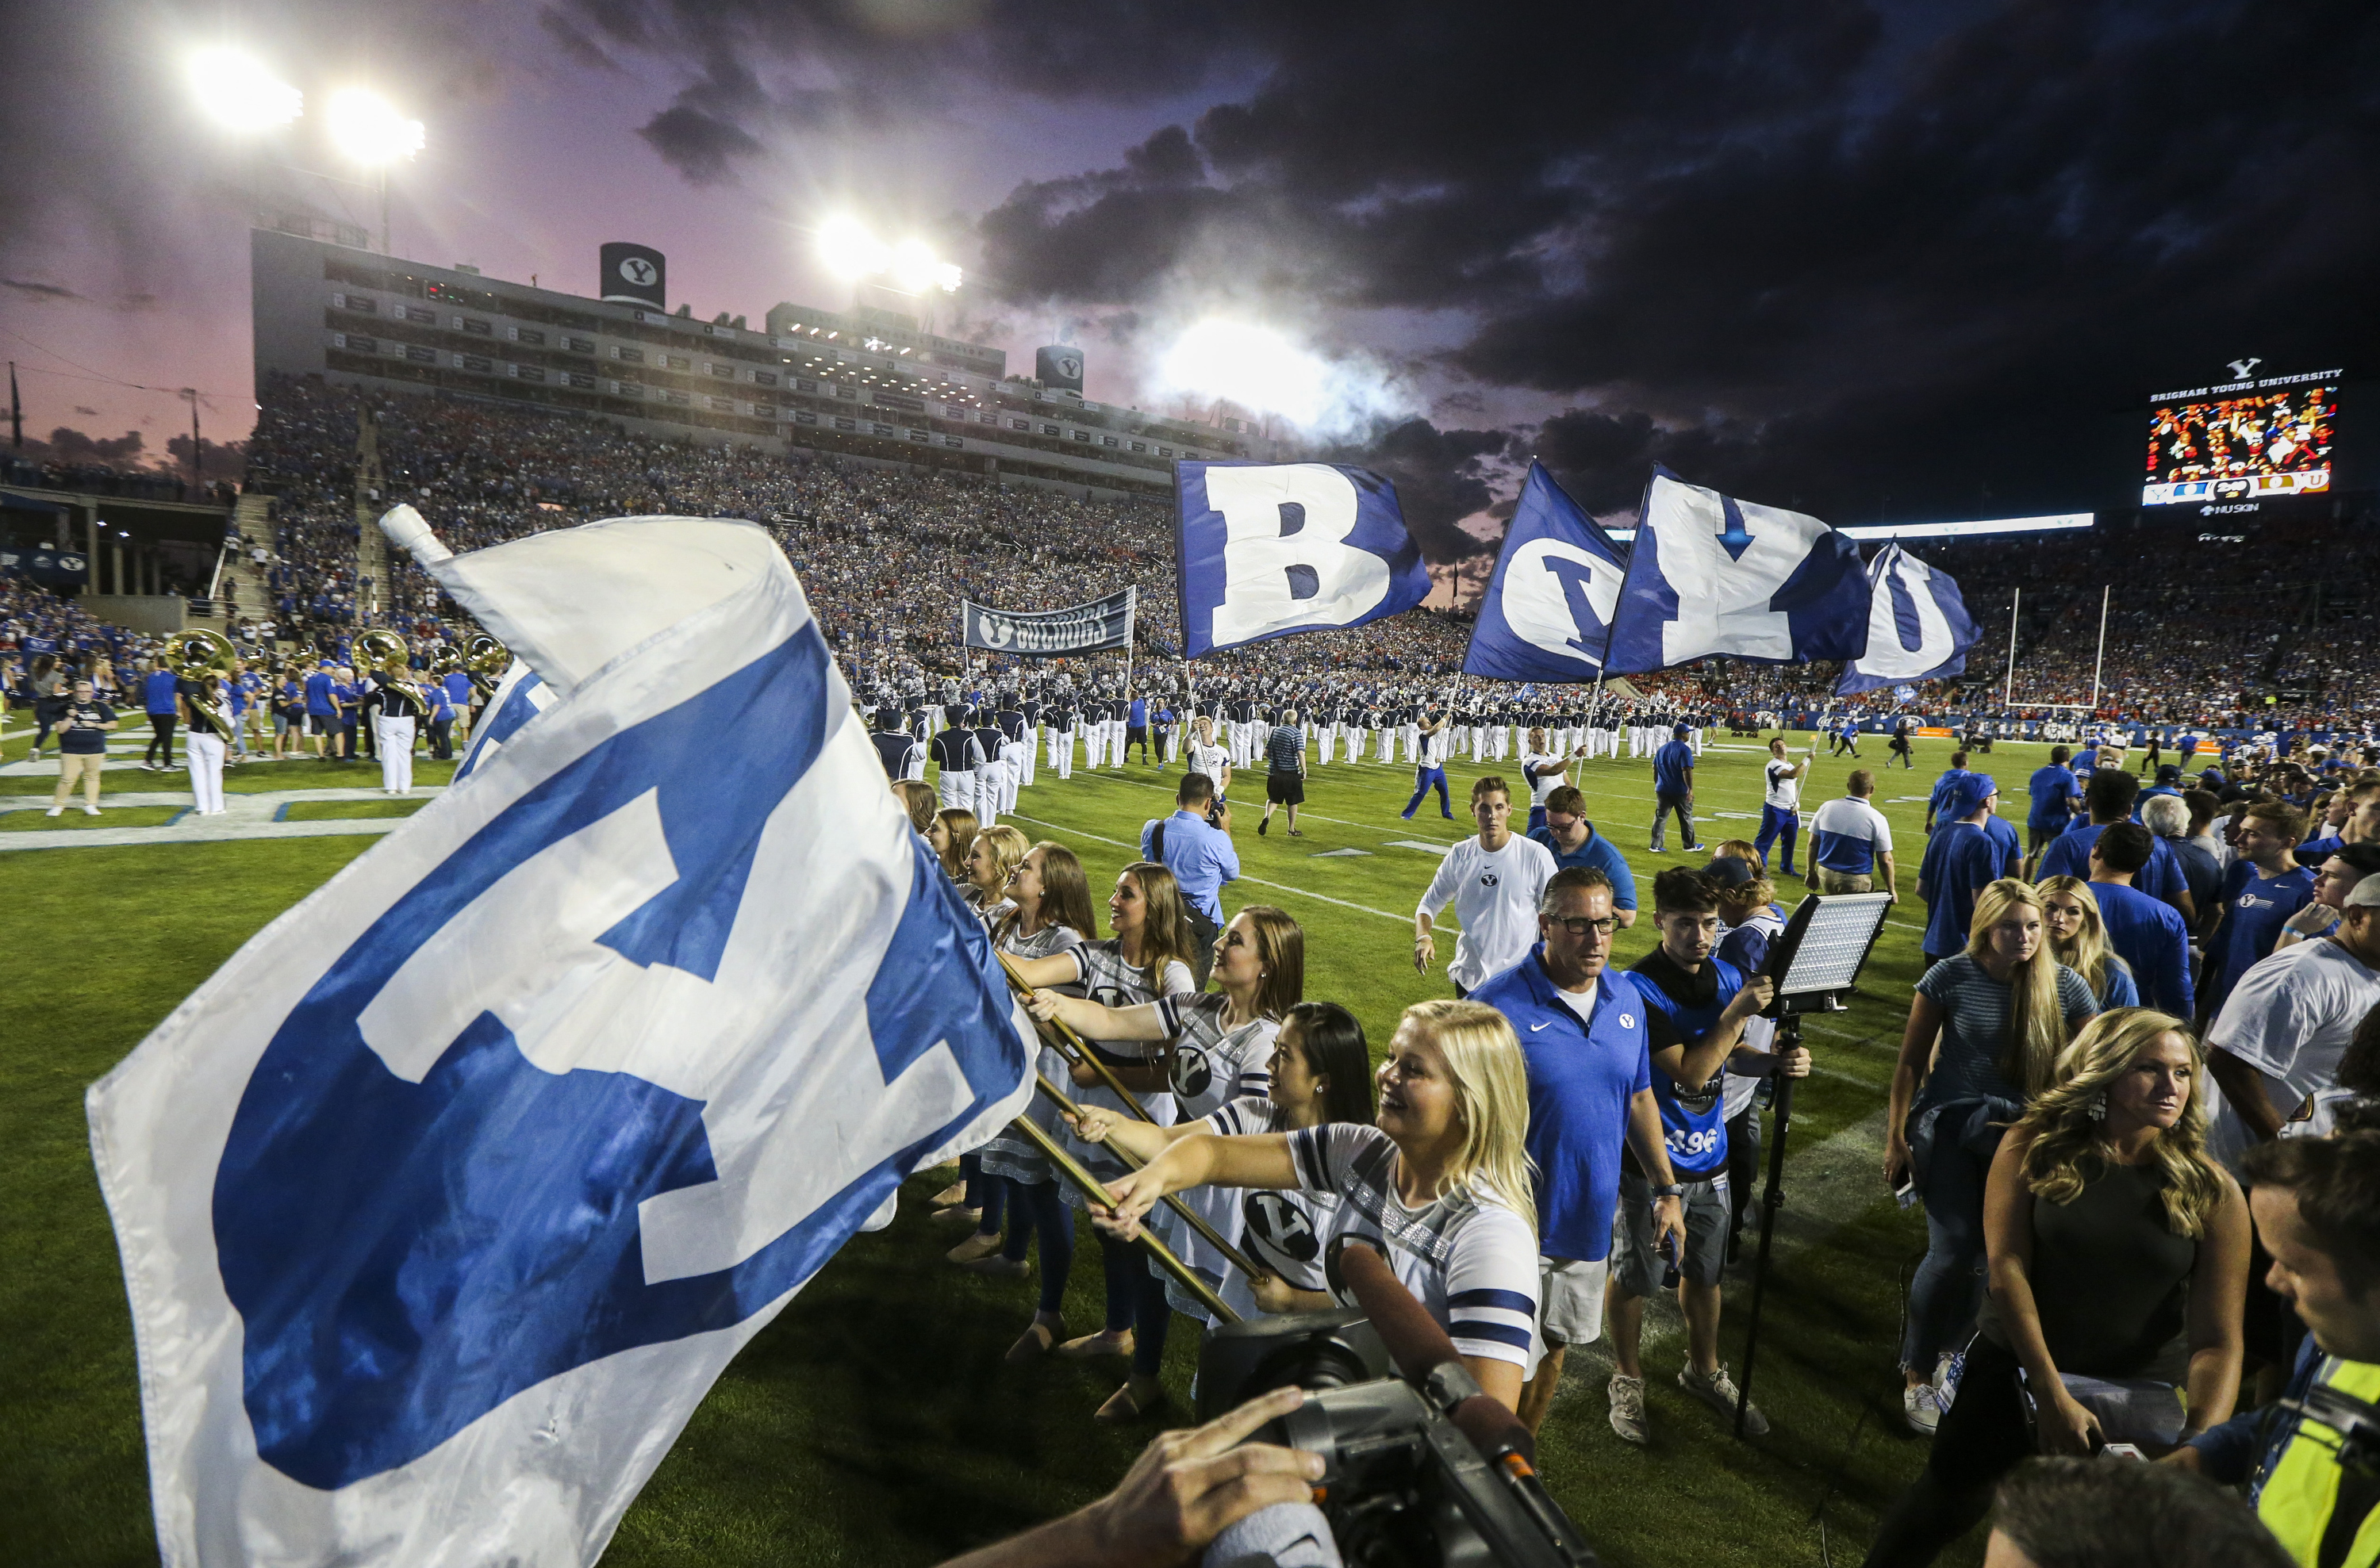 The BYU Spirit Squad waves their team flags after running out